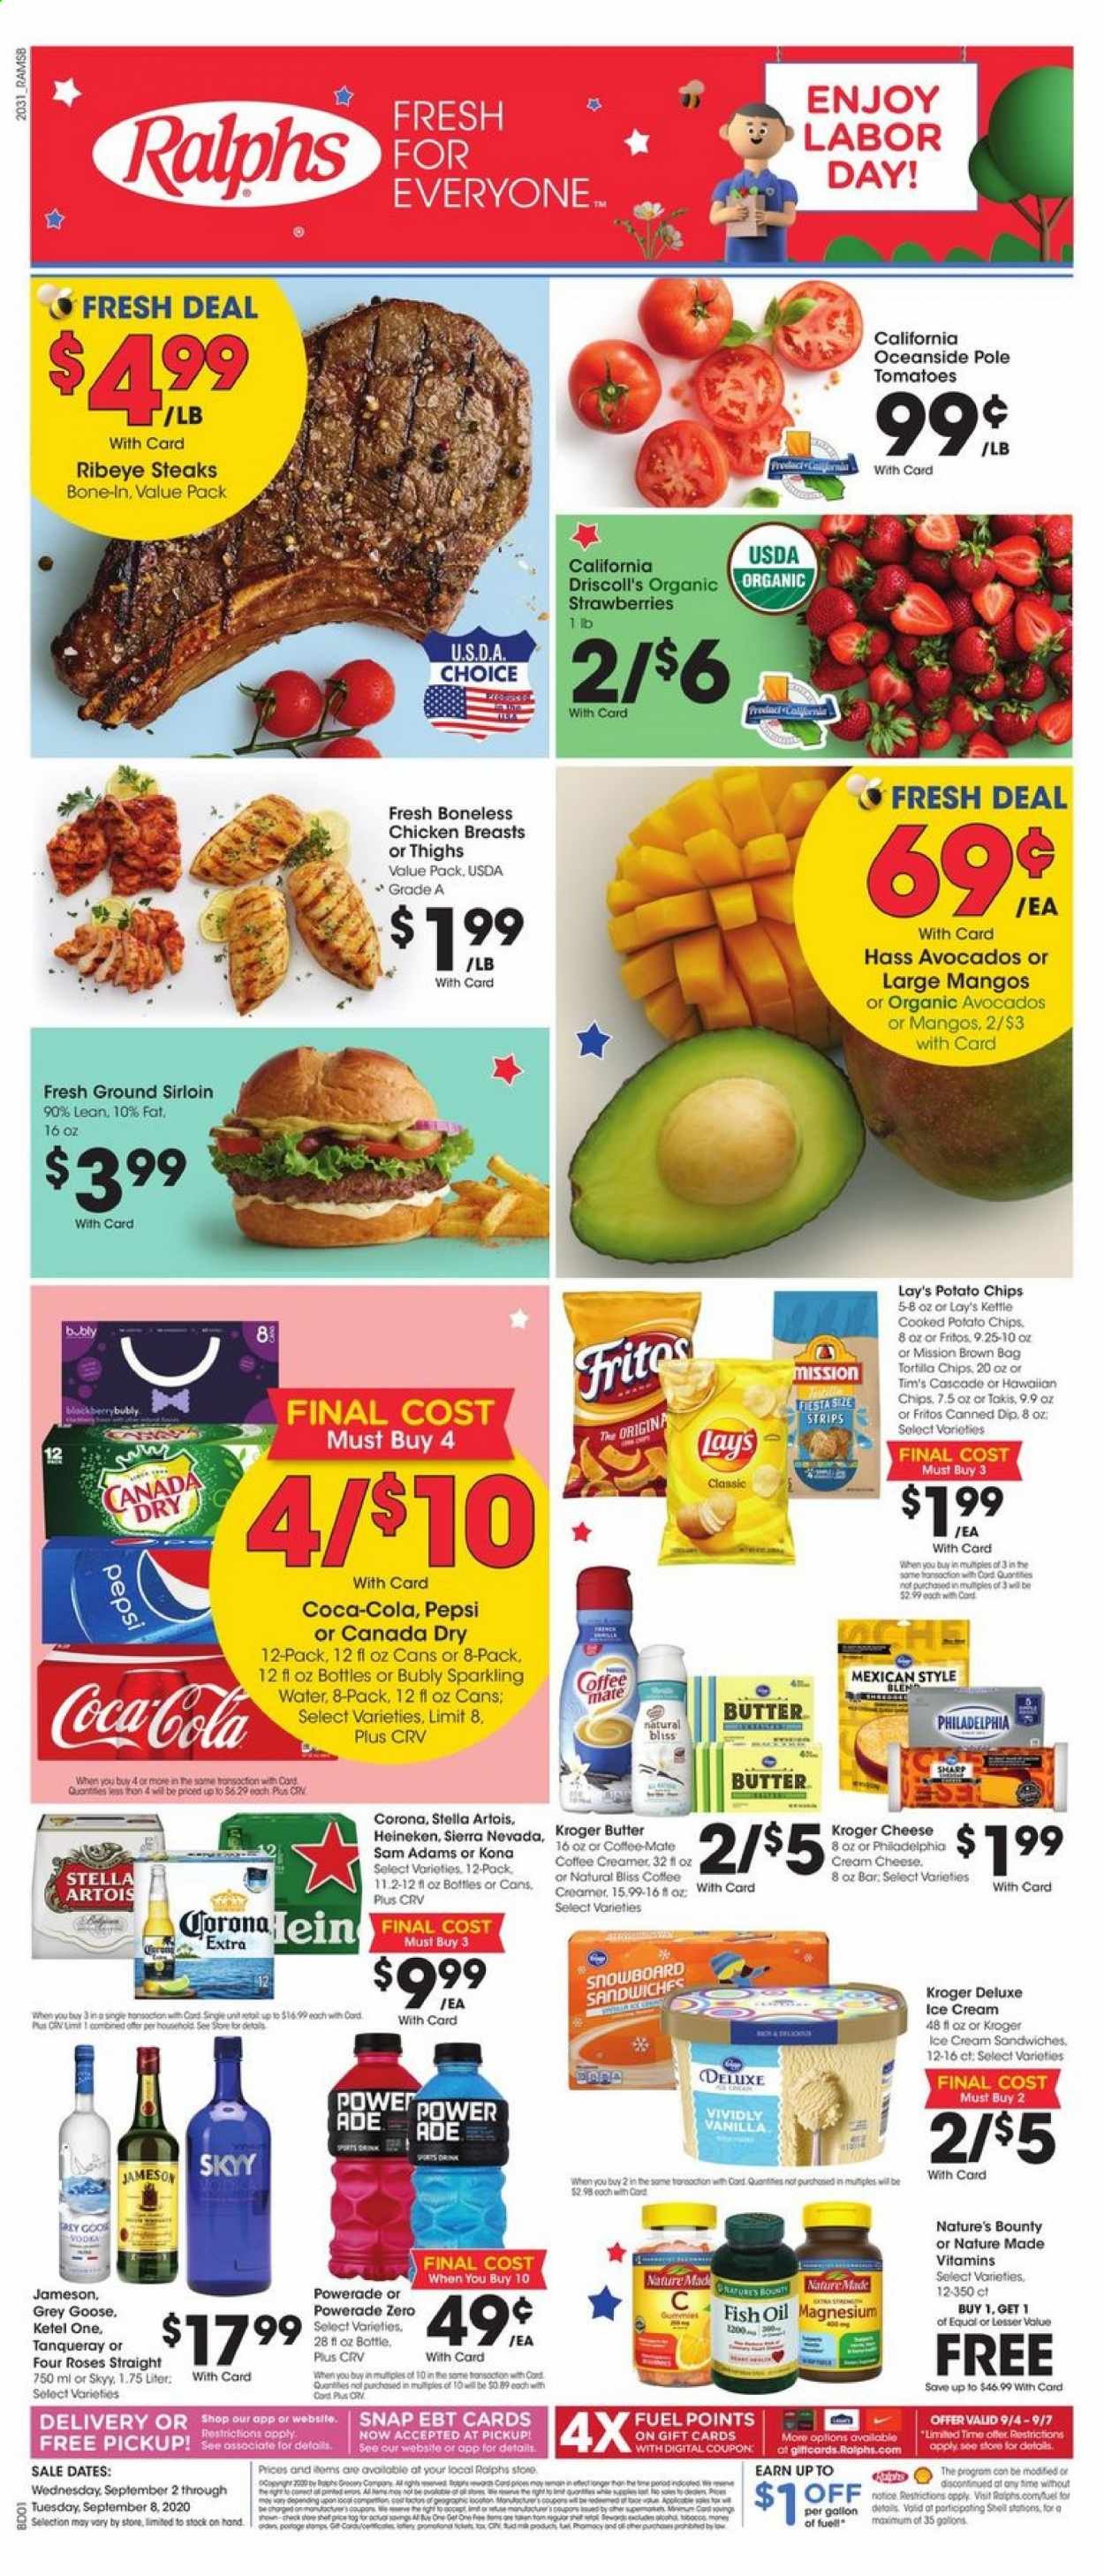 Ralphs Flyer - 09.02.2020 - 09.08.2020 - Sales products - avocado, bag, bottle, butter, canada dry, cascade, coca-cola, cod, cream cheese, dates, fish oil, fritos, fuel, goose, magnesium, mango, mate, nature made, nature's bounty, sharp, shell, stella artois, strawberries, tomatoes, tortilla chips, ice cream, ice cream sandwiche, jameson, philadelphia, potato chips, powerade, chicken, chicken breast, pepsi, organic, chips, cheese, creamer, sparkling water, roses, coffee creamer, lay's, bounty, corona, heineken, fish, tomato, chicken breasts, fan, kettle, ice cream sandwiches. Page 1.